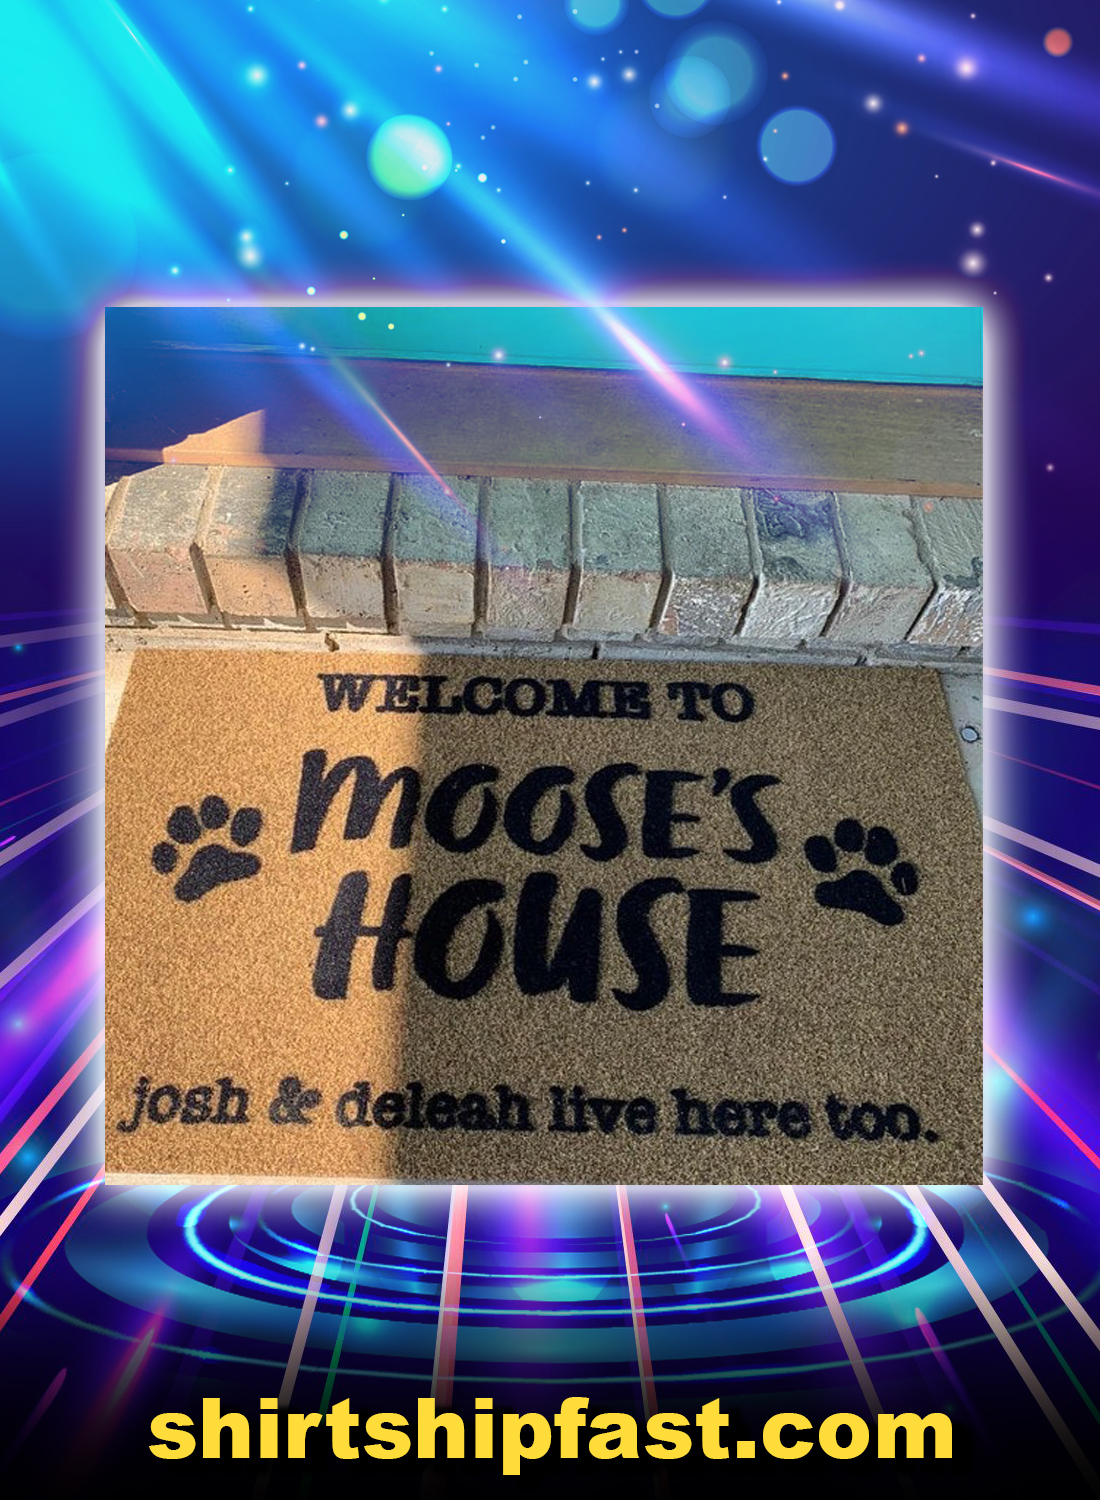 Personalized custom name welcome to dogs house doormat - Picture 1